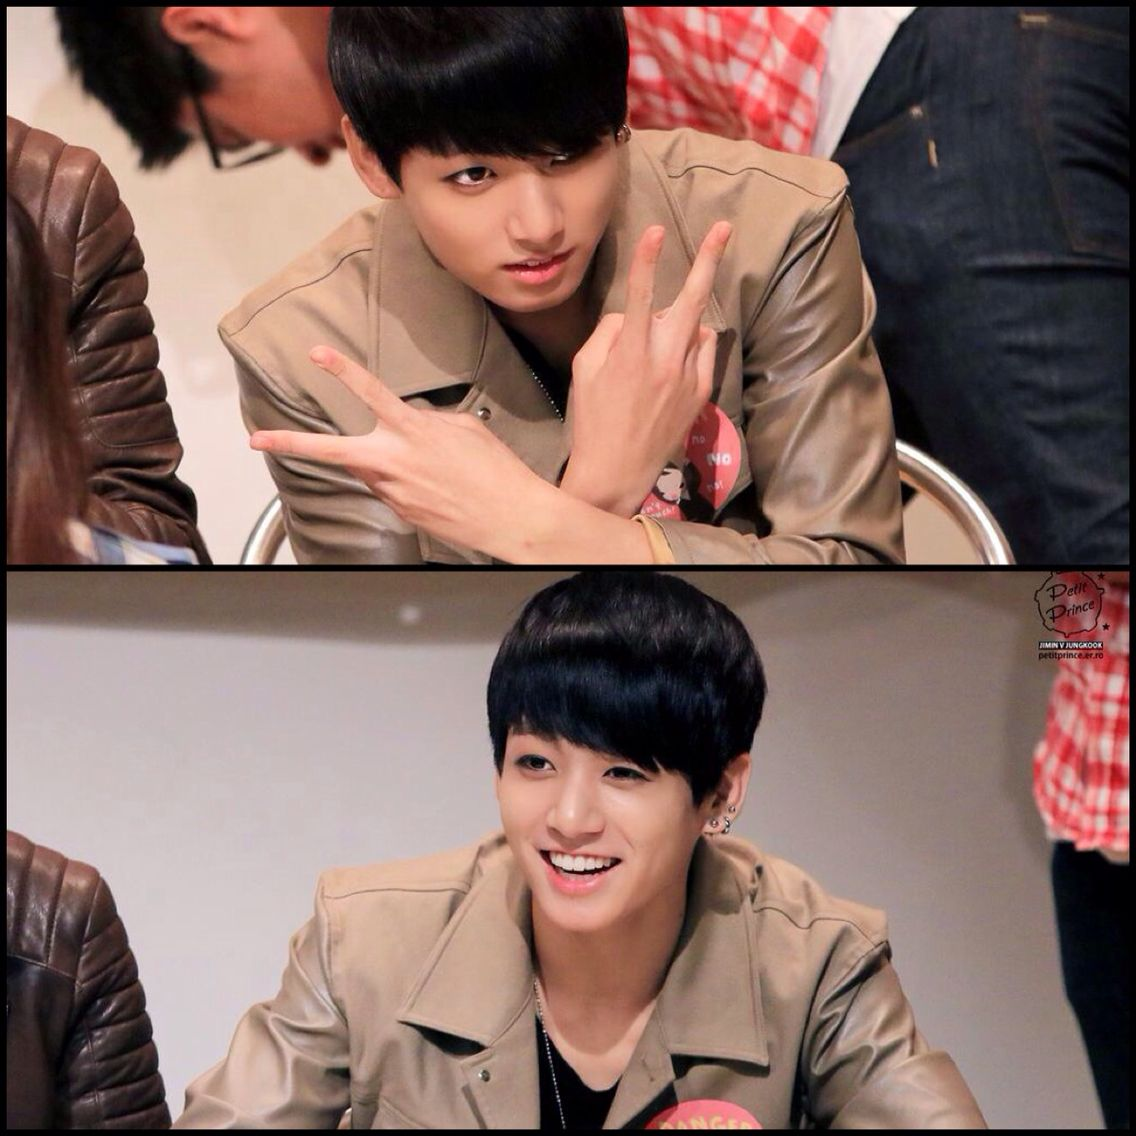 Jungkook from Bts fansign event